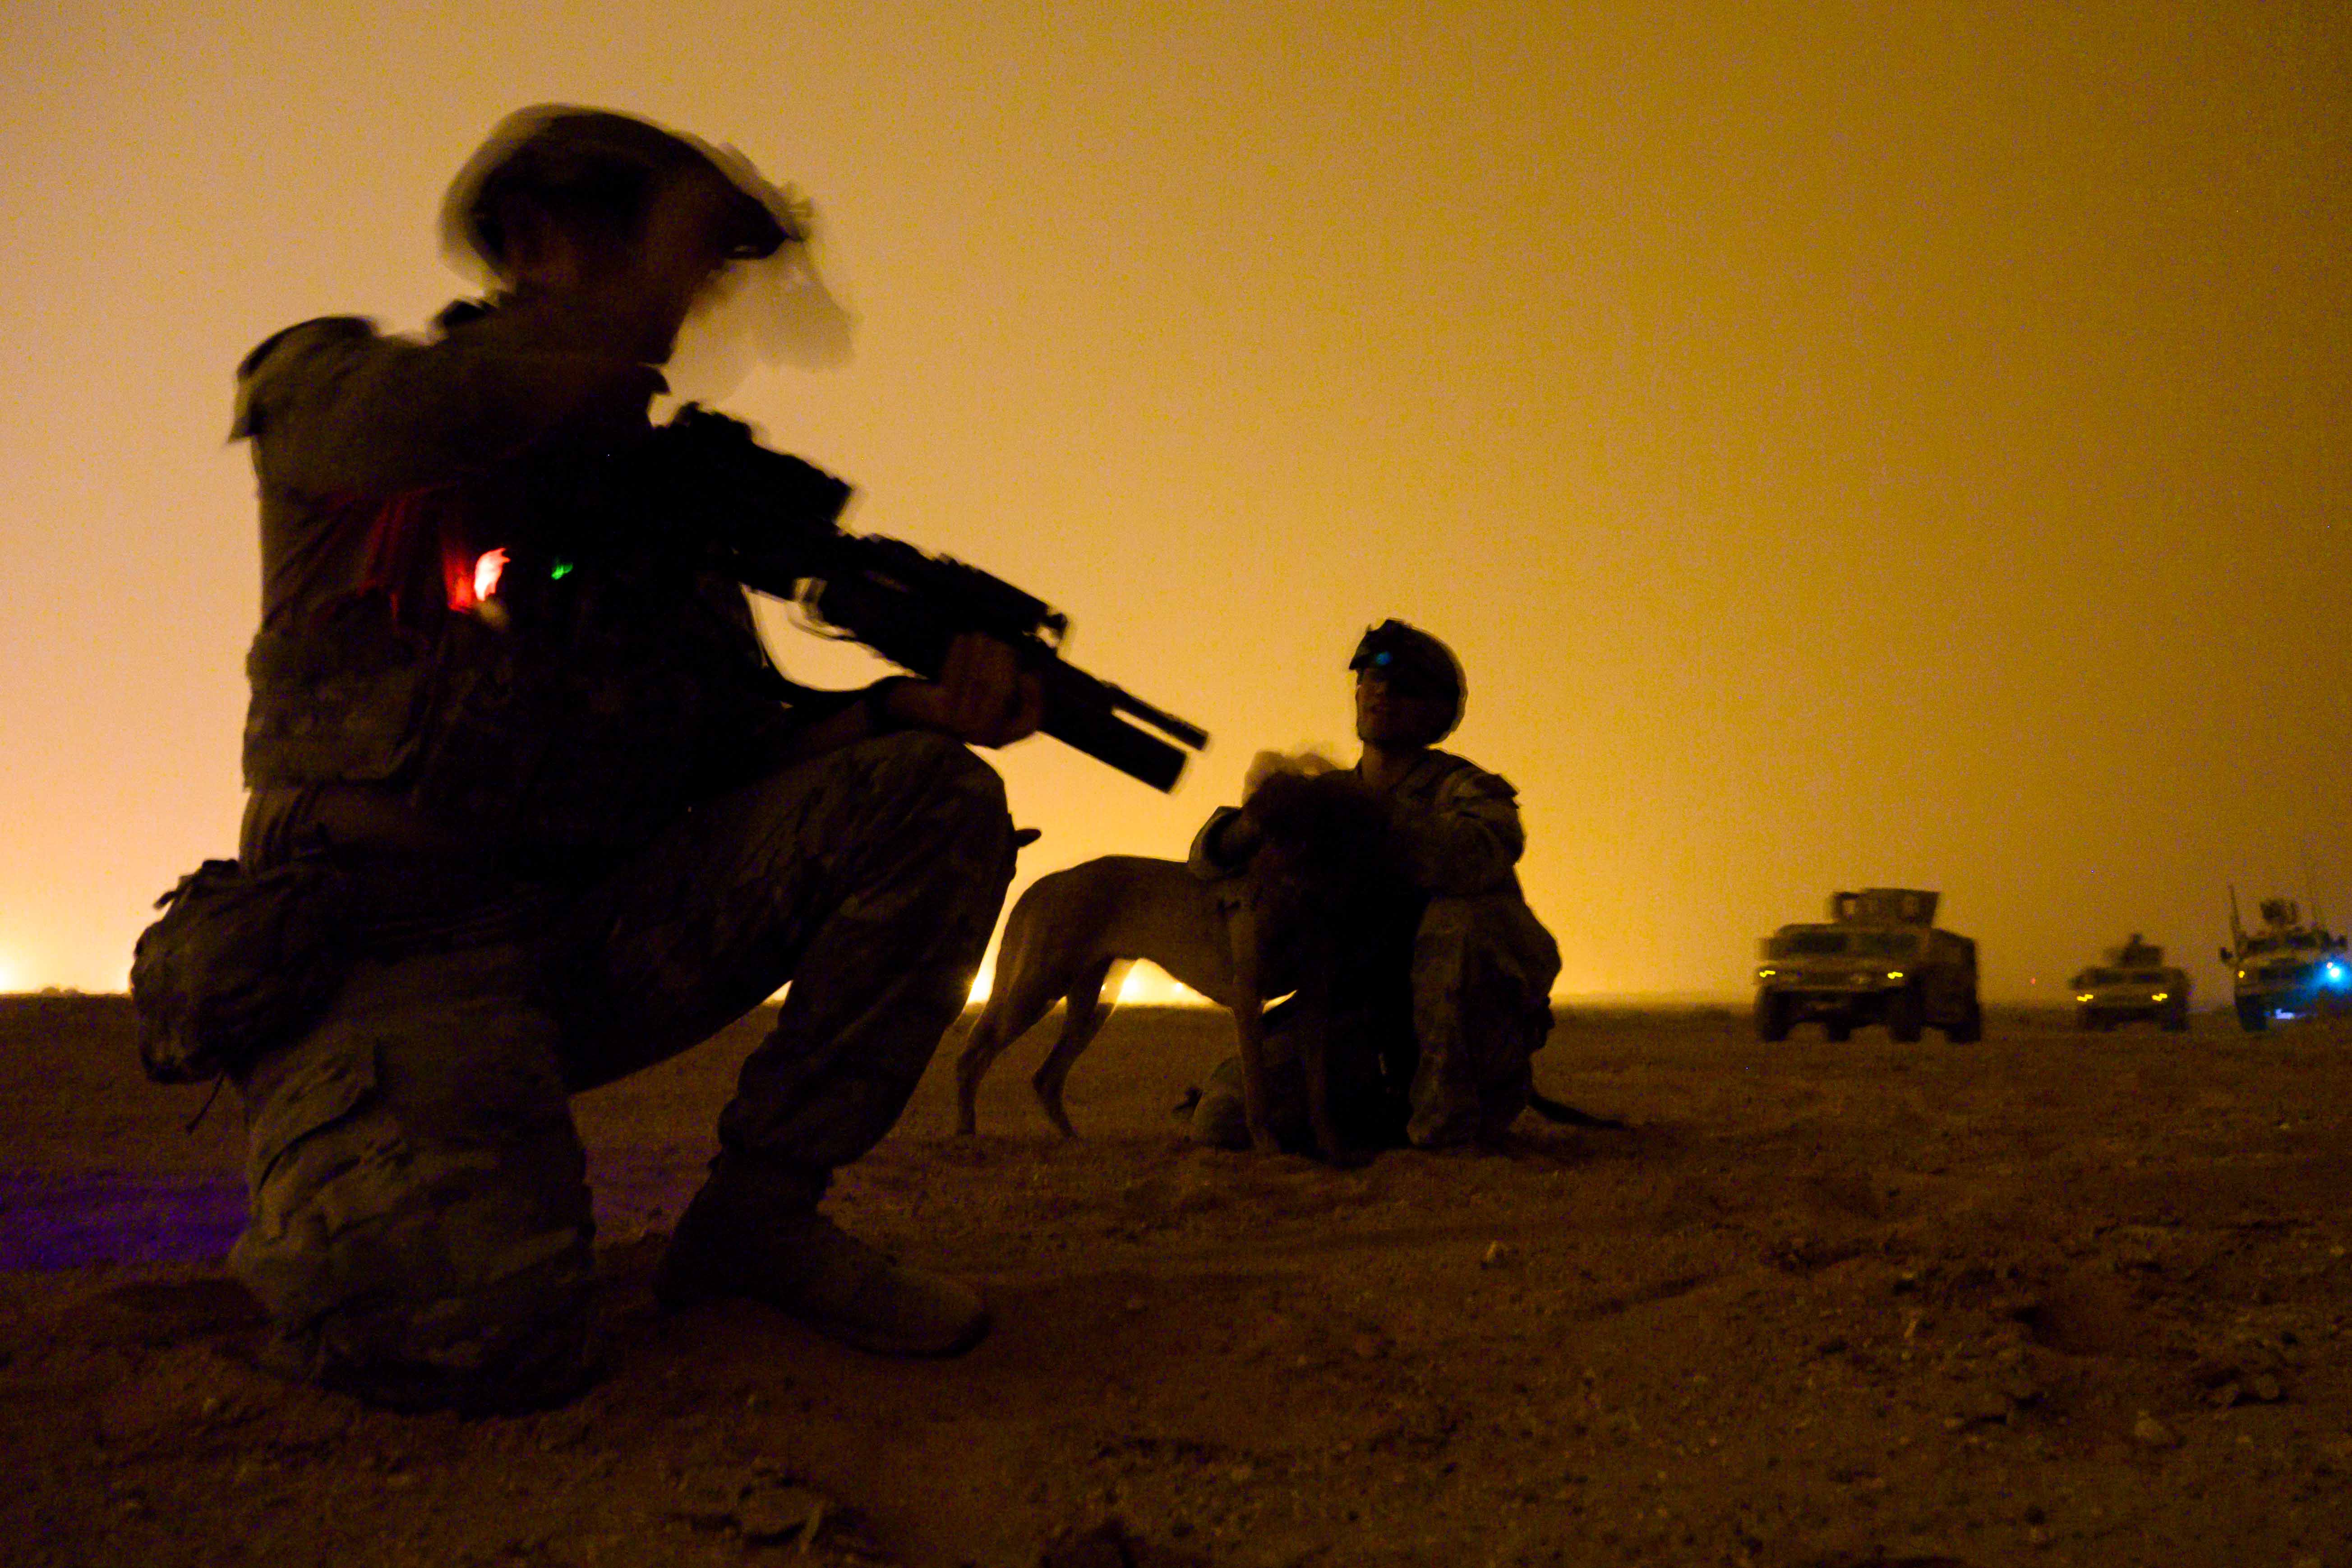 U.S. Air Force defenders with the 378th Expeditionary Security Forces Squadron conduct a dismounted patrol during a quick response training event at Prince Sultan Air Base, Saudi Arabia, June 12. (Senior Airman Samuel Earick/Air Force)